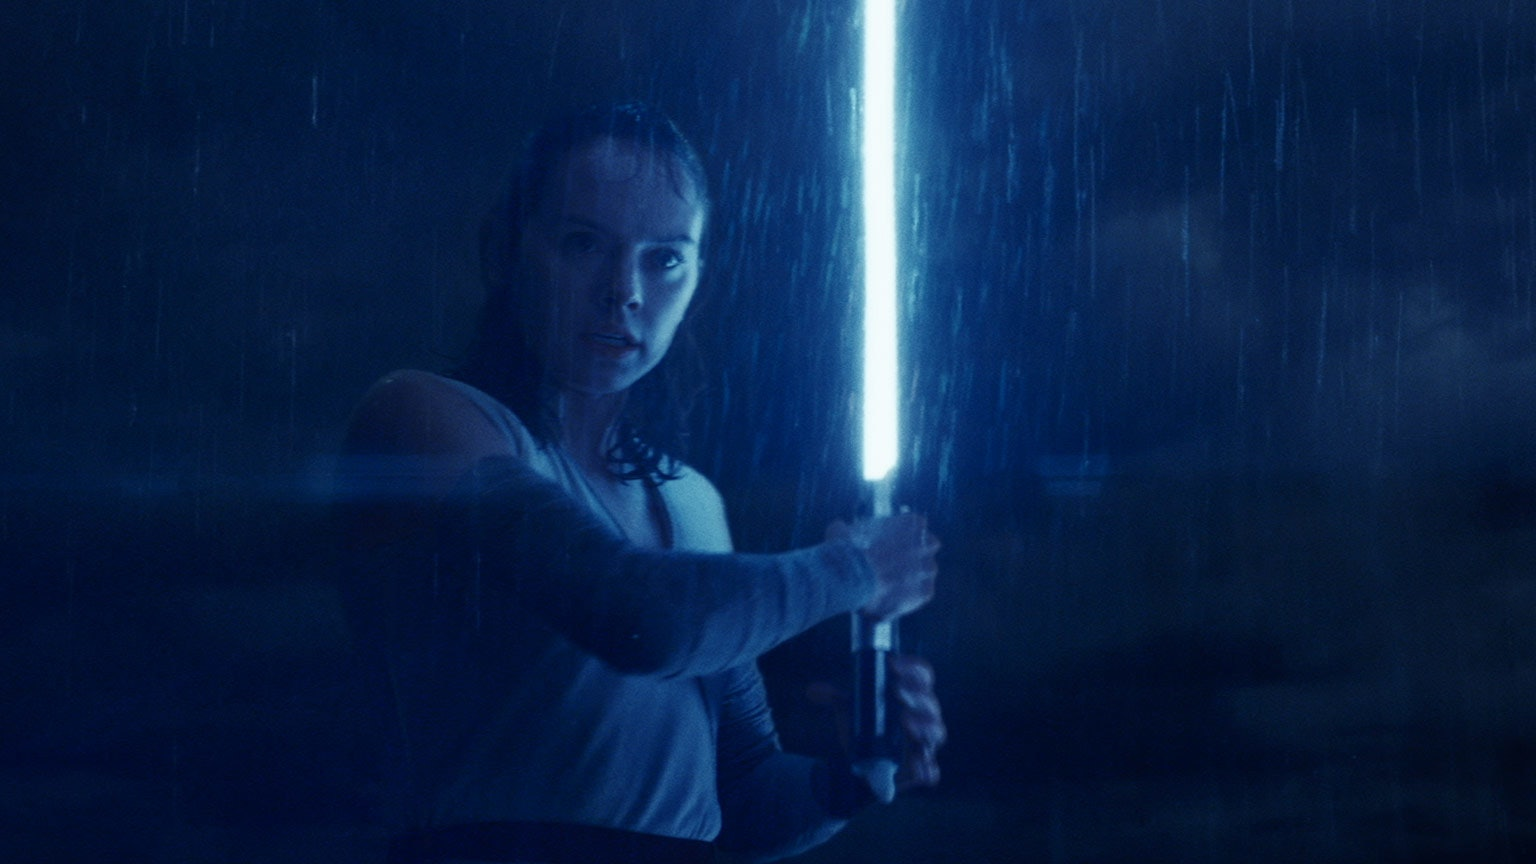 Does Rey turn to the Dark side?